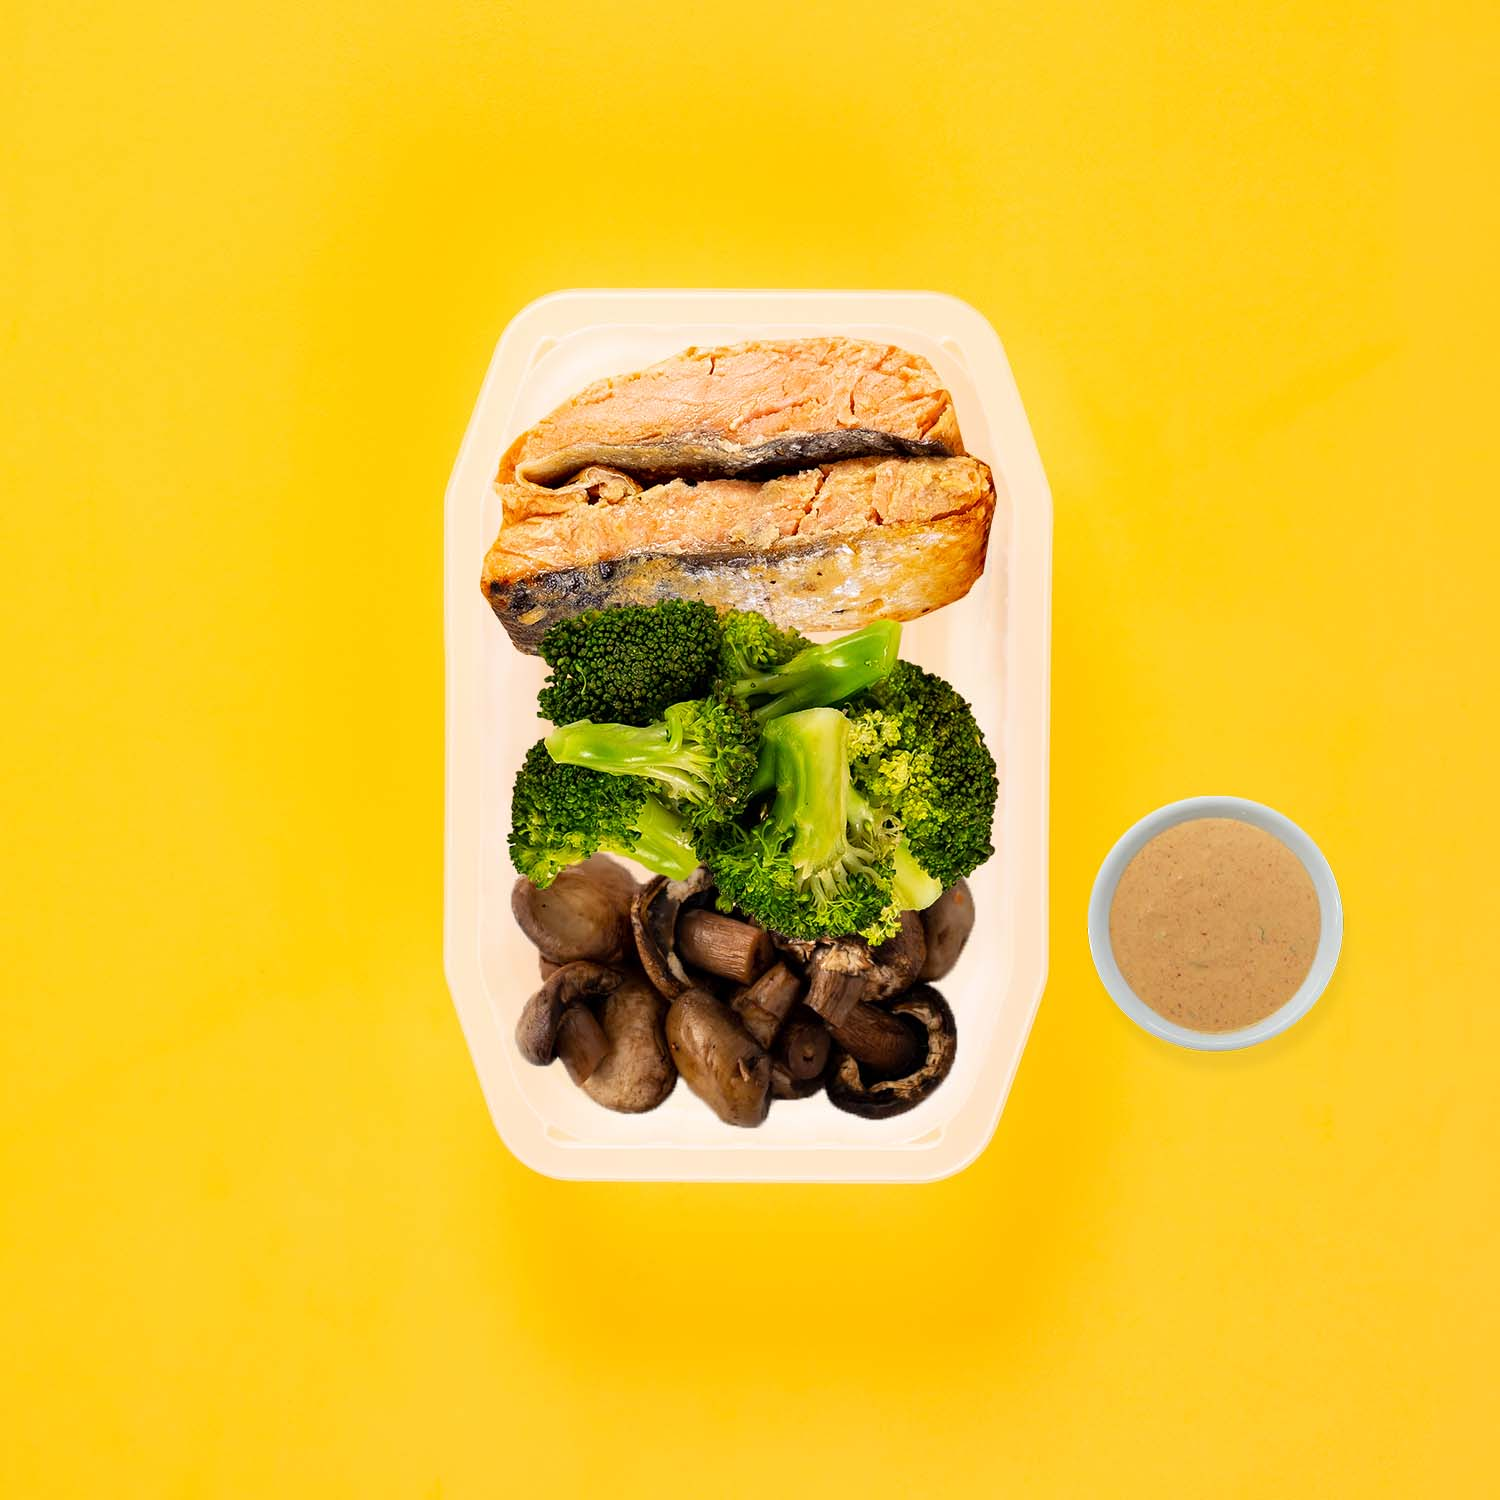 50g Miso Salmon 50g Broccoli 150g Mushrooms Butter Chicken Sauce